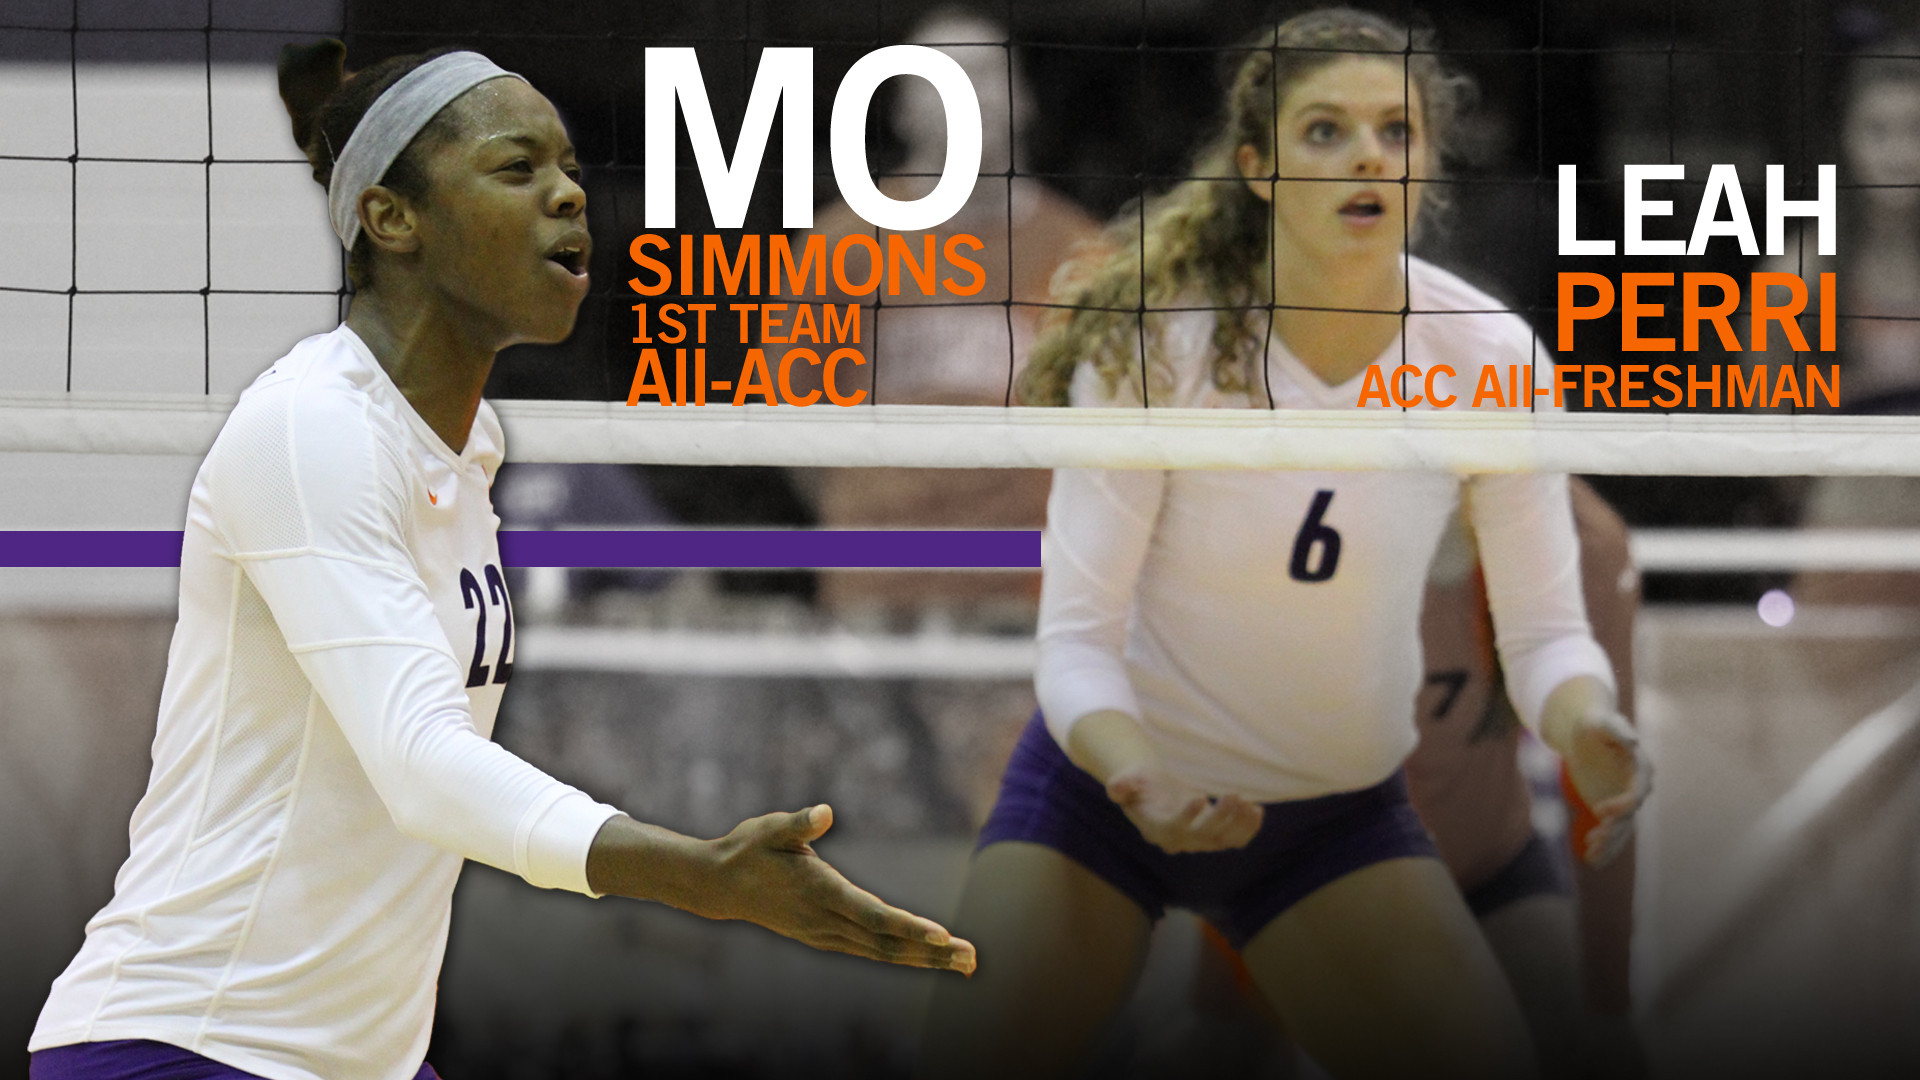 @ClemsonVB: Simmons Named to All-ACC 1st Team; Perri All-Freshman